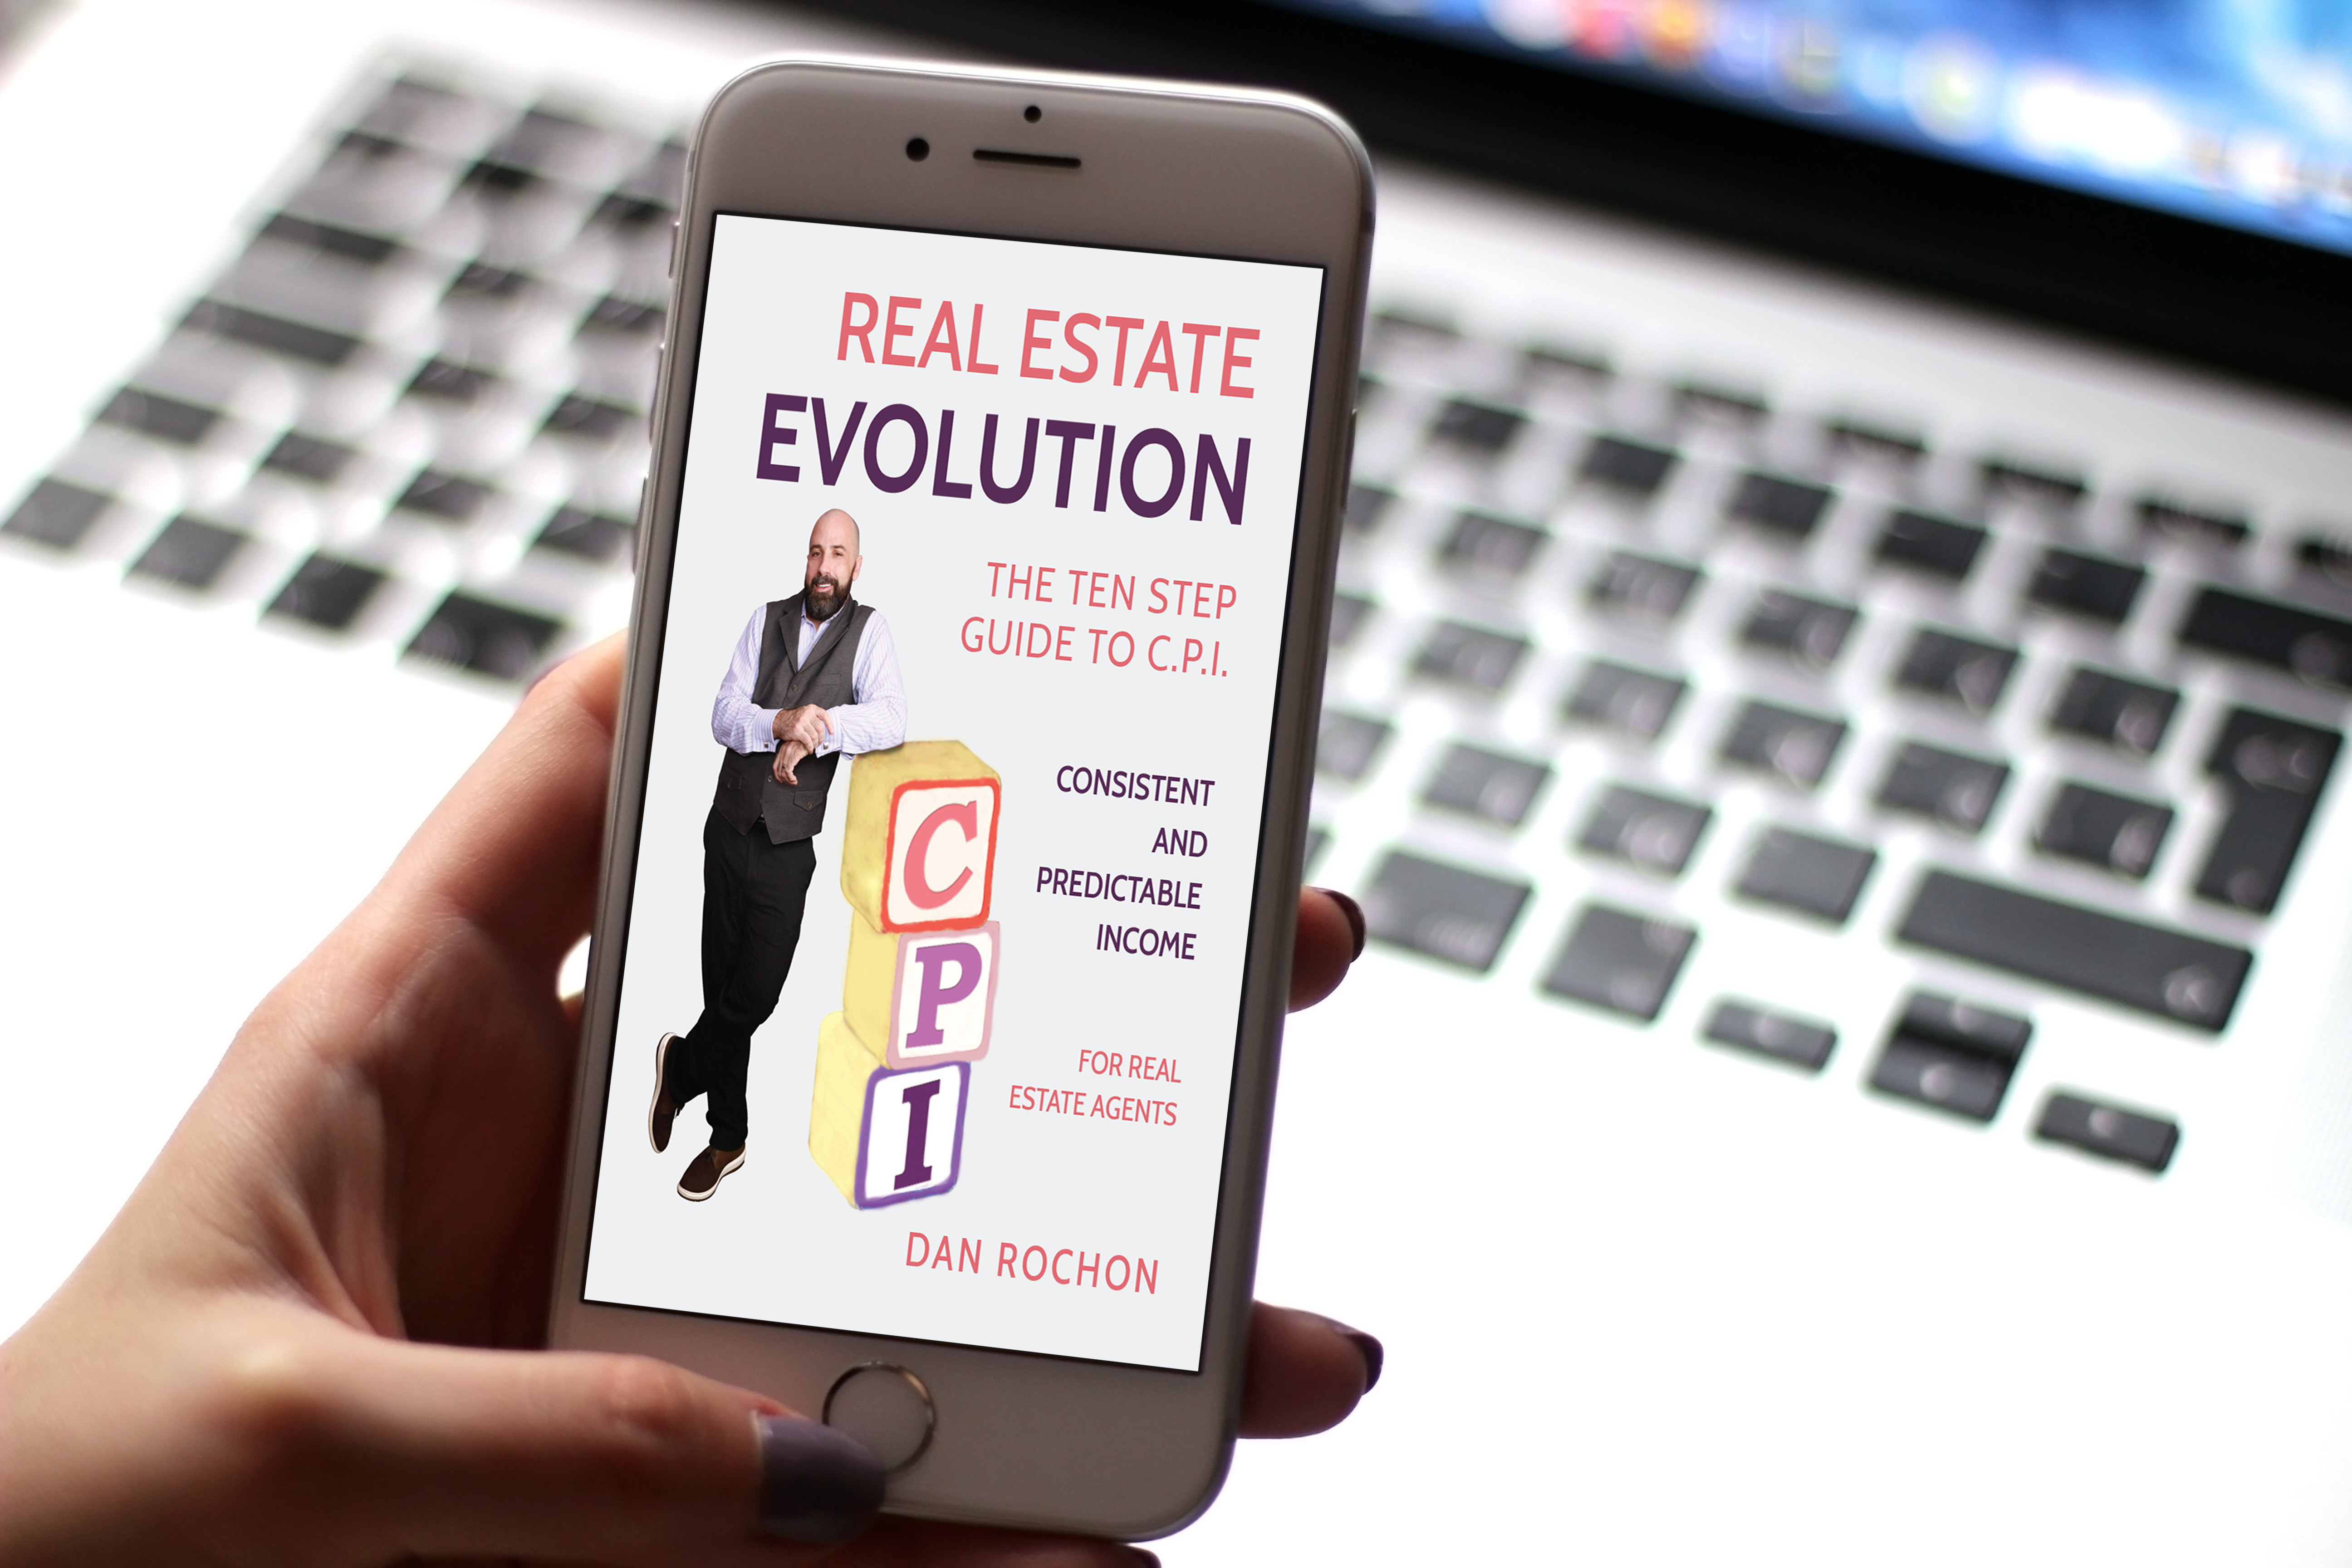 "Dan Rochon, Author and Real Estate Agent Launches New Book, ""Real Estate Evolution: The Ten Step Guide to (C.P.I.) - Consistent and Predictable Income For Real Estate Agents"" to Rave Reviews"